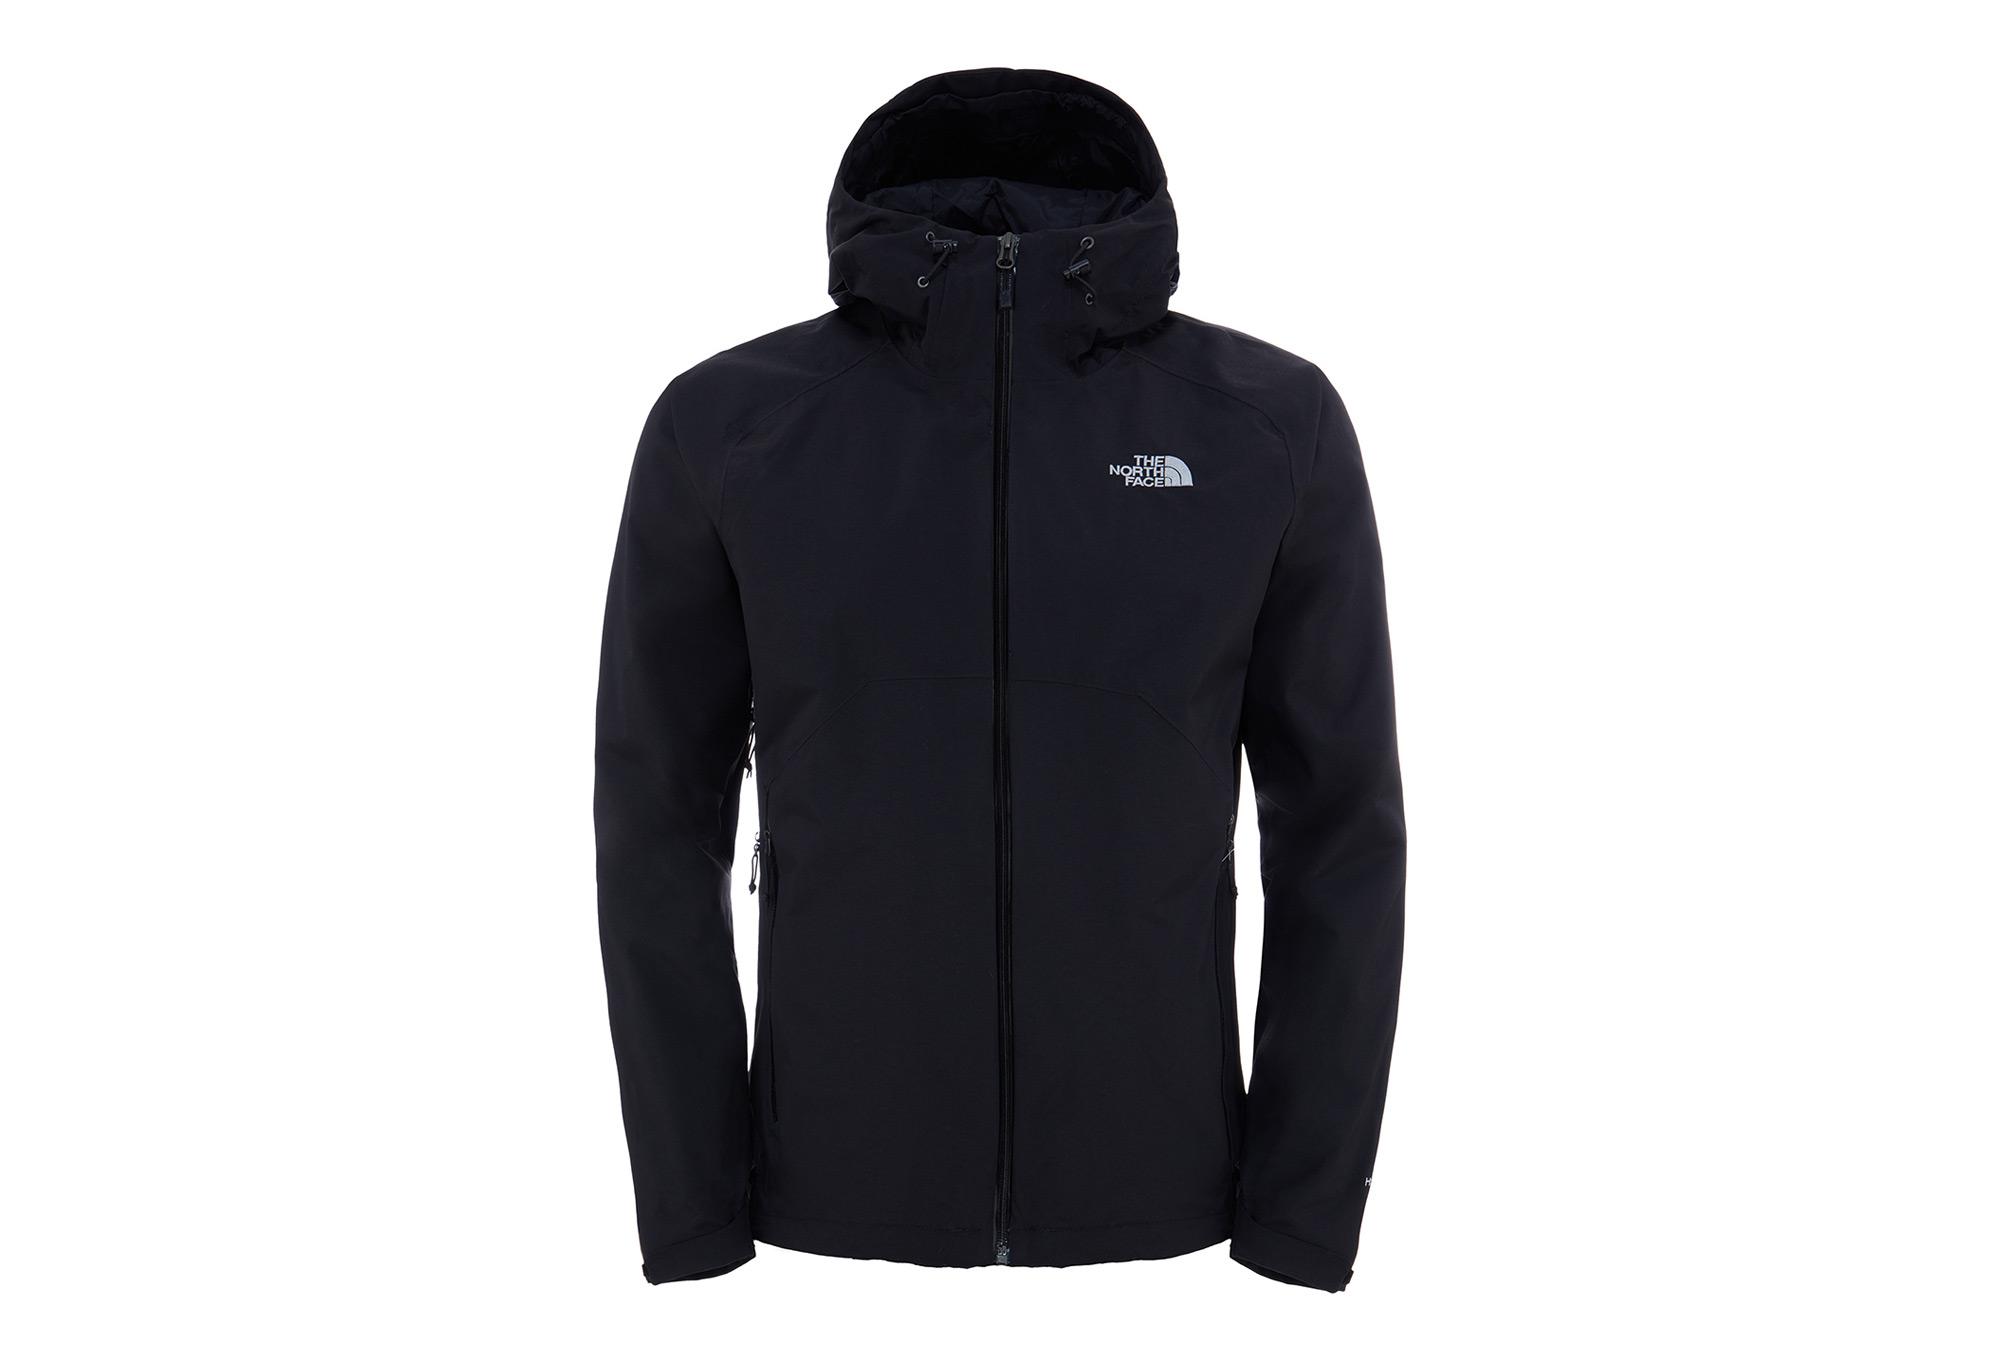 58f7d07920 The North Face Stratos Jacke Schwarz | Alltricks.de